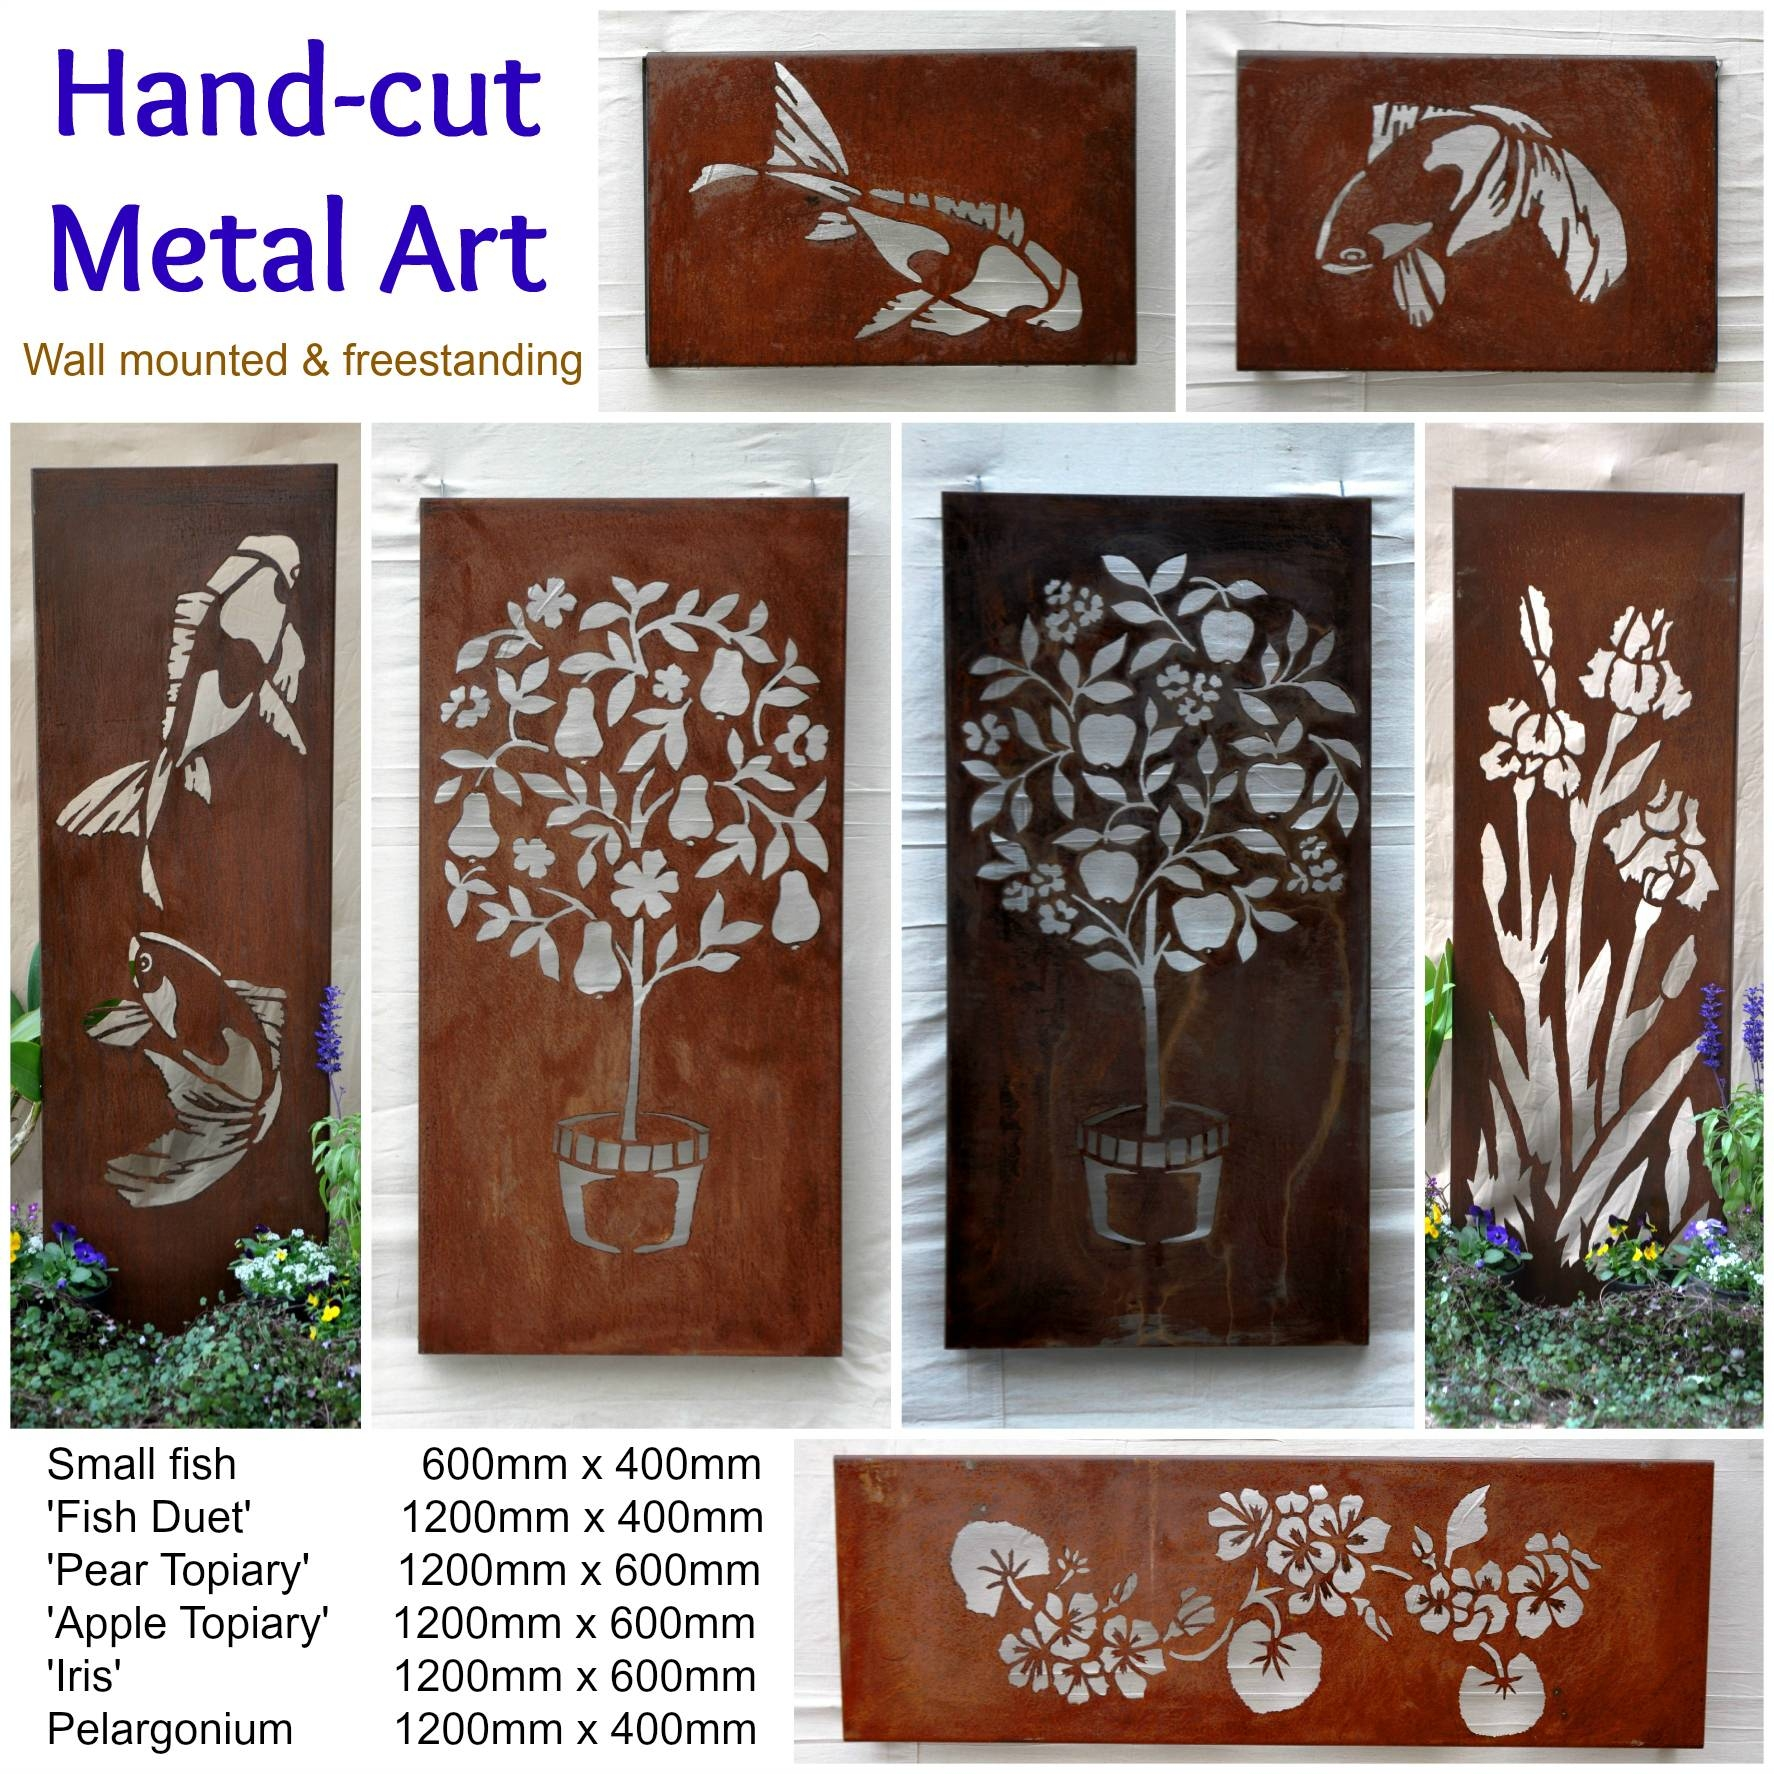 Wall Art Decor: Unique Metal Australian Wall Art Free Standing Pertaining To Most Popular Unique Metal Wall Art (View 3 of 20)